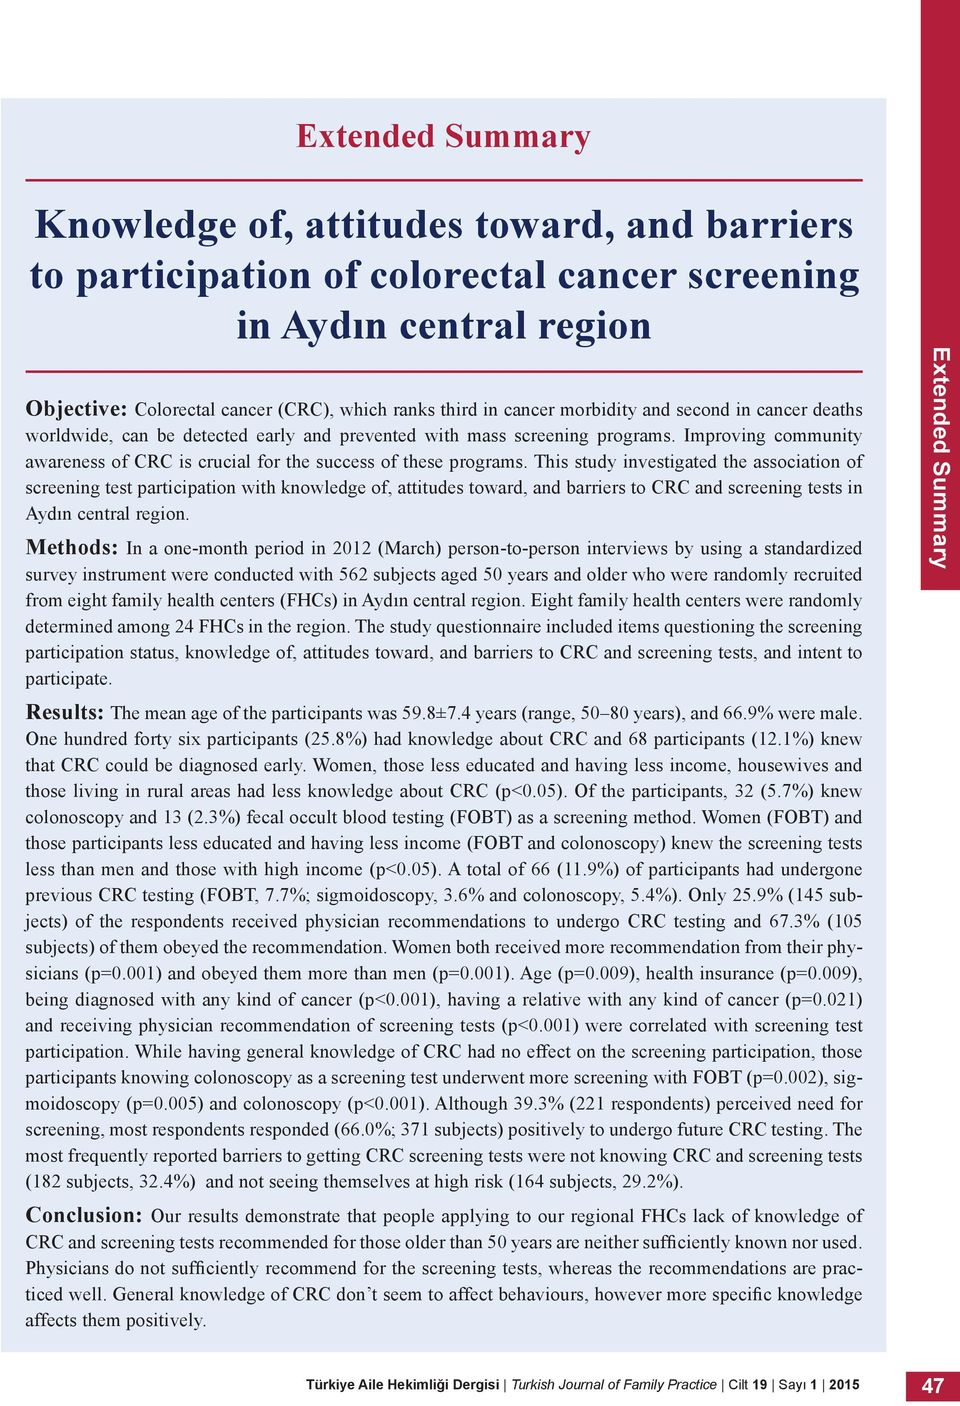 This study investigated the association of screening test participation with knowledge of, attitudes toward, and barriers to CRC and screening tests in Aydın central region.